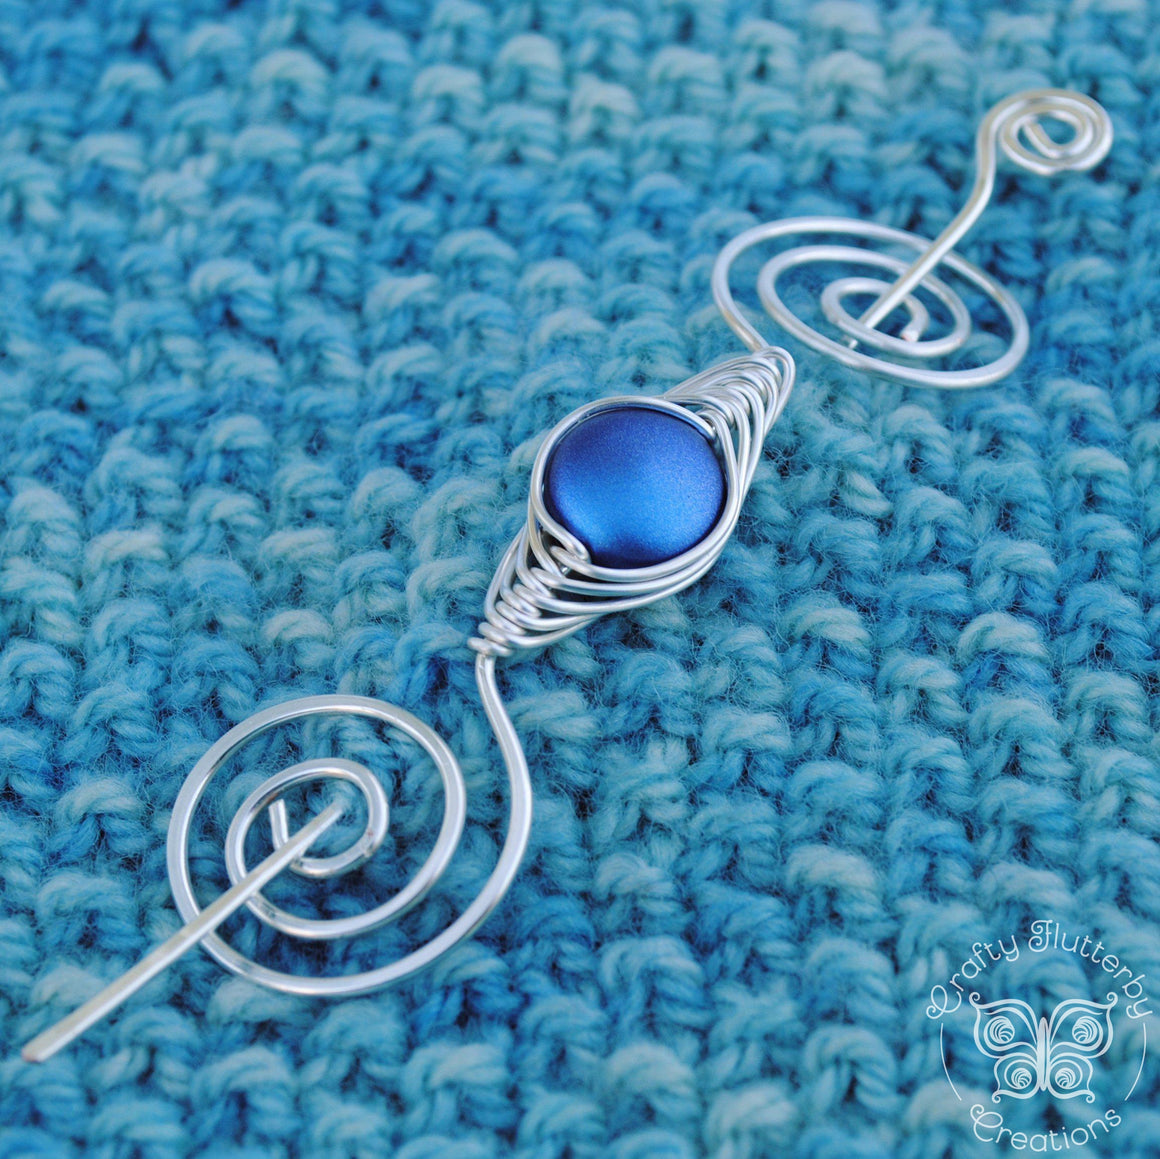 Shawl Pin, Violet Shimmer Shawl Pin - Noteworthy Classic Silver - Crafty Flutterby Creations